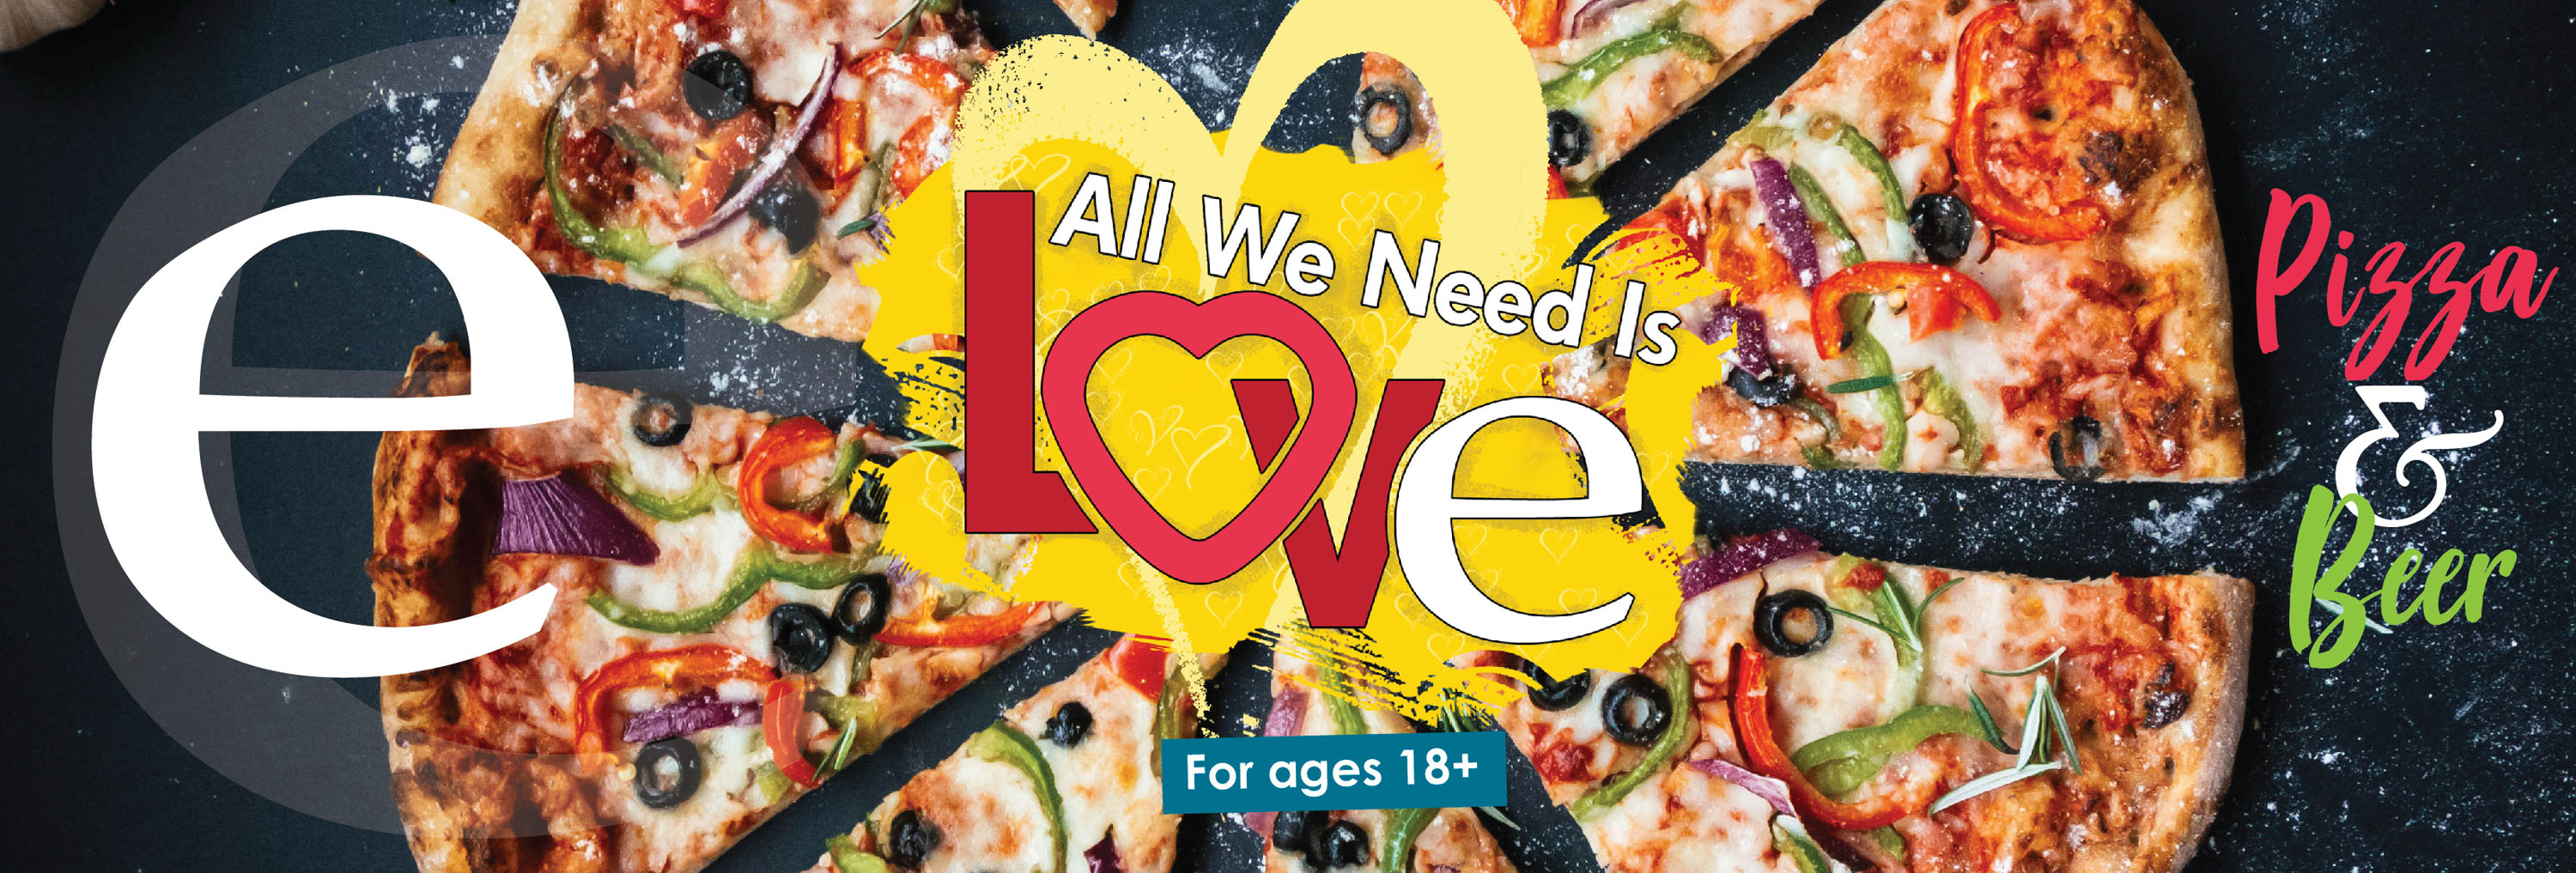 All We Need Is Love - Pizza and Beer